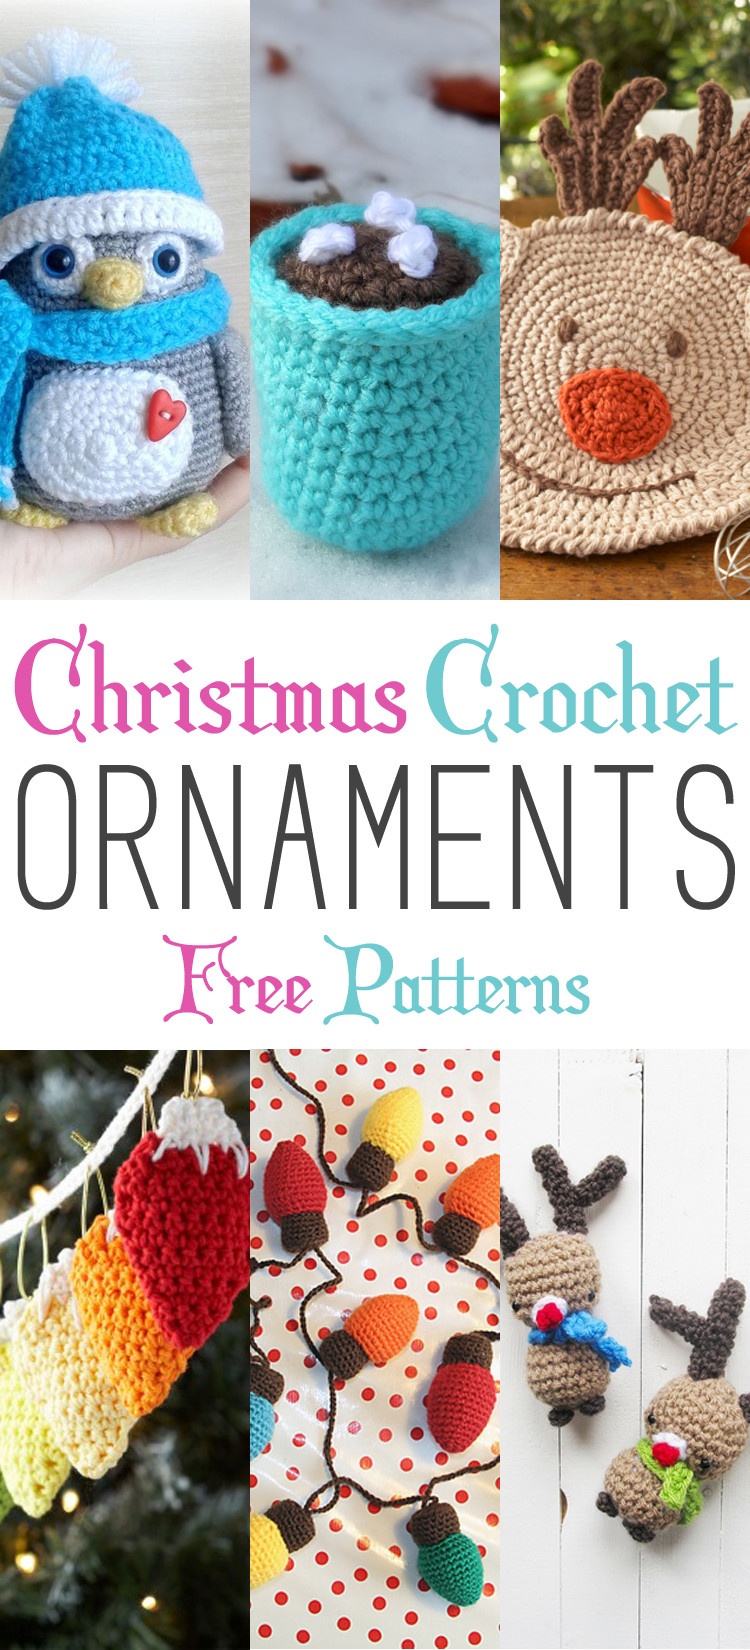 Best Of Christmas Crochet ornaments with Free Patterns the Crochet Christmas ornaments Patterns Of Unique 47 Pics Crochet Christmas ornaments Patterns